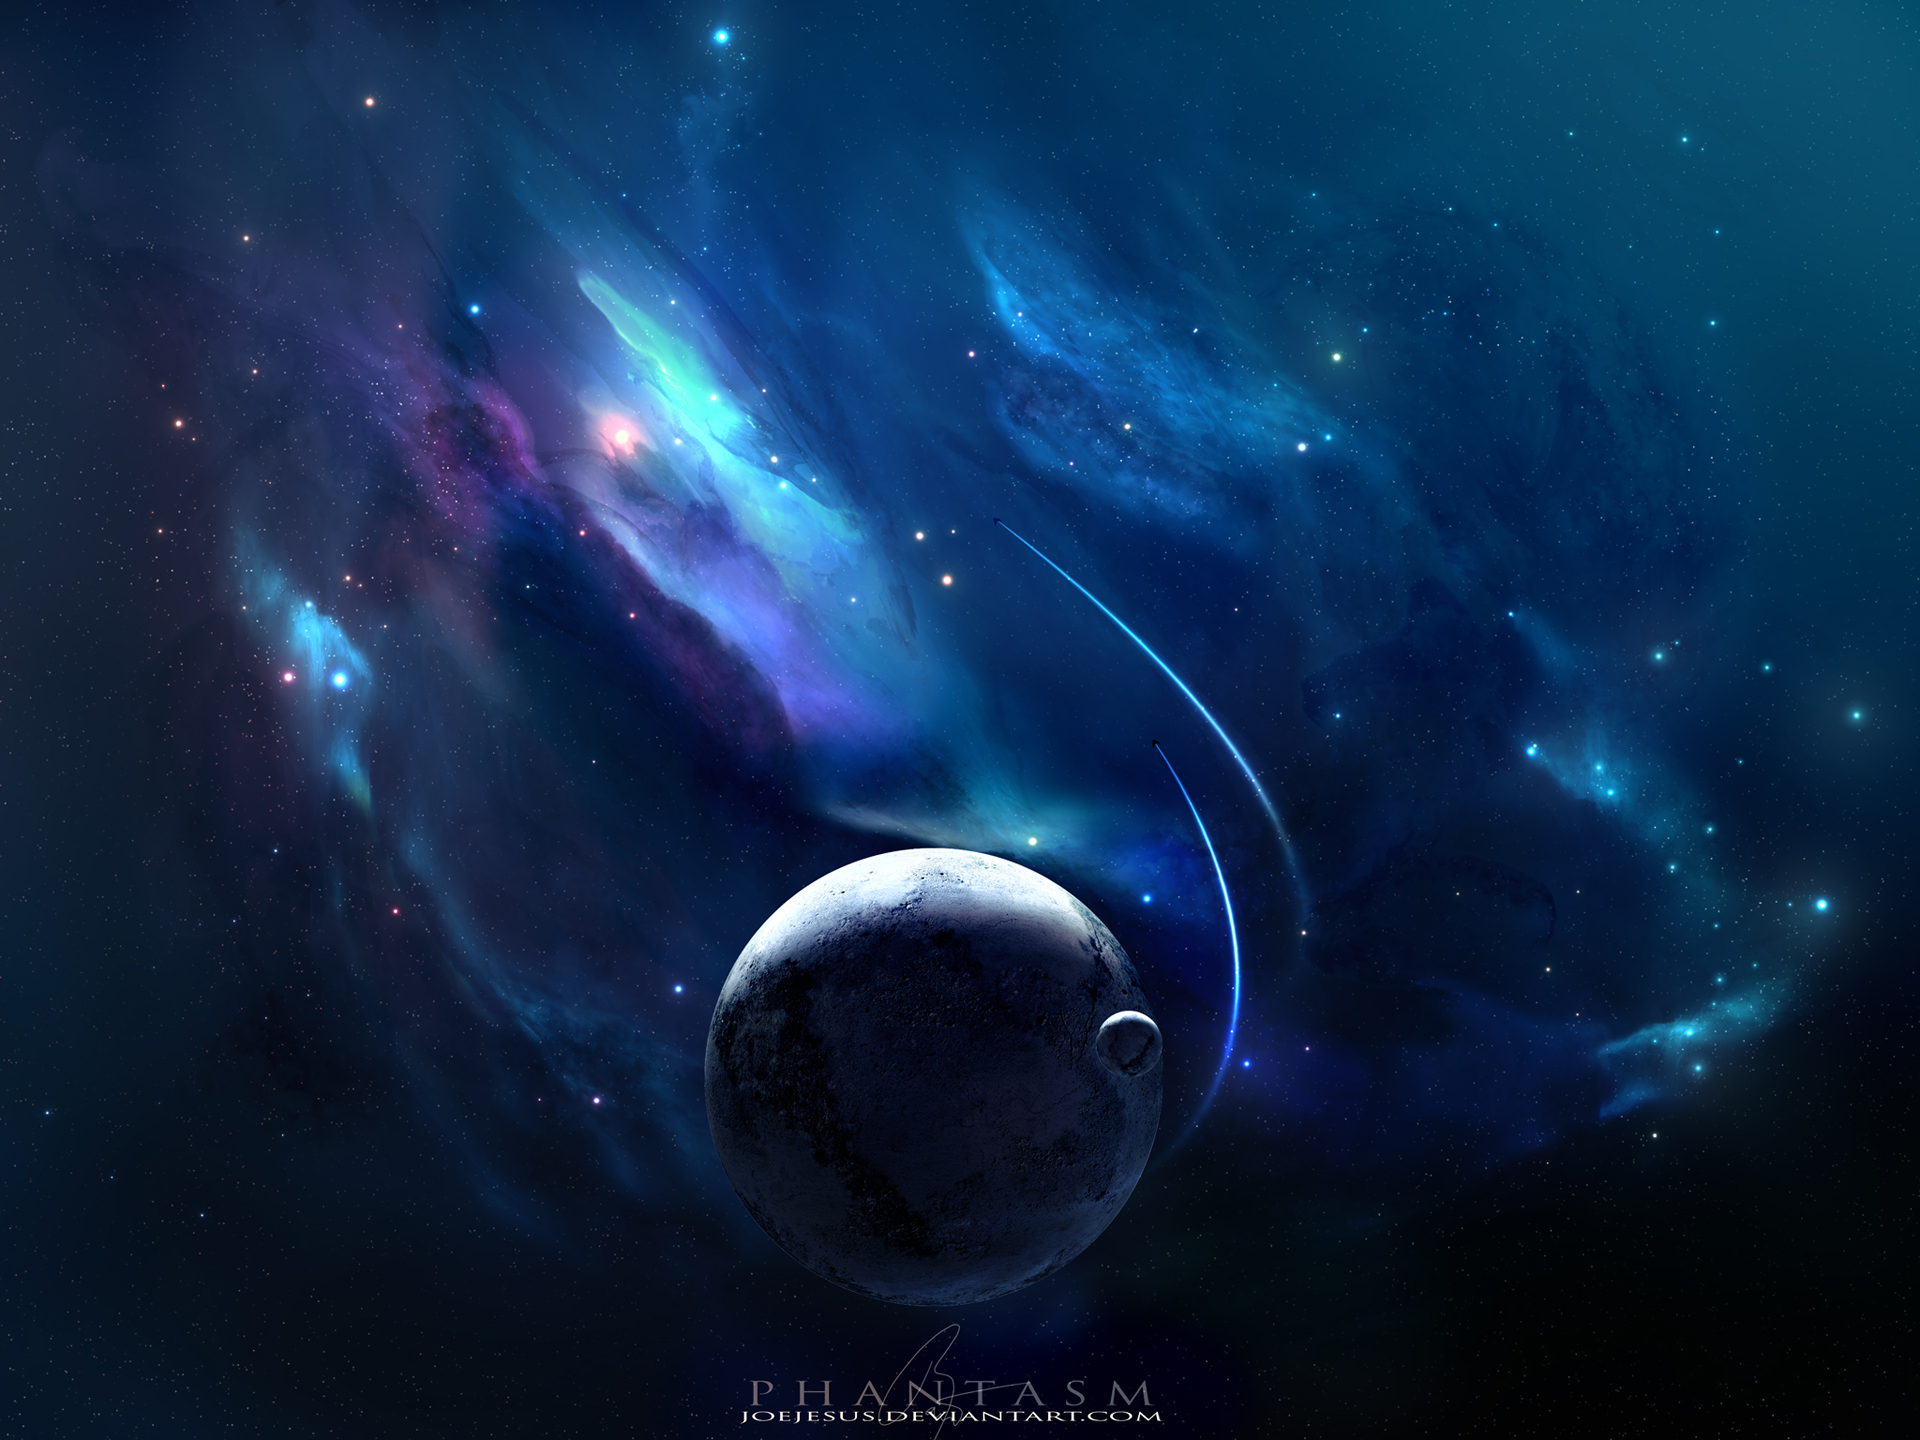 Full HD Wallpapers Space Blue Nebulae Planets Spacecrafts Stars 1920x1440